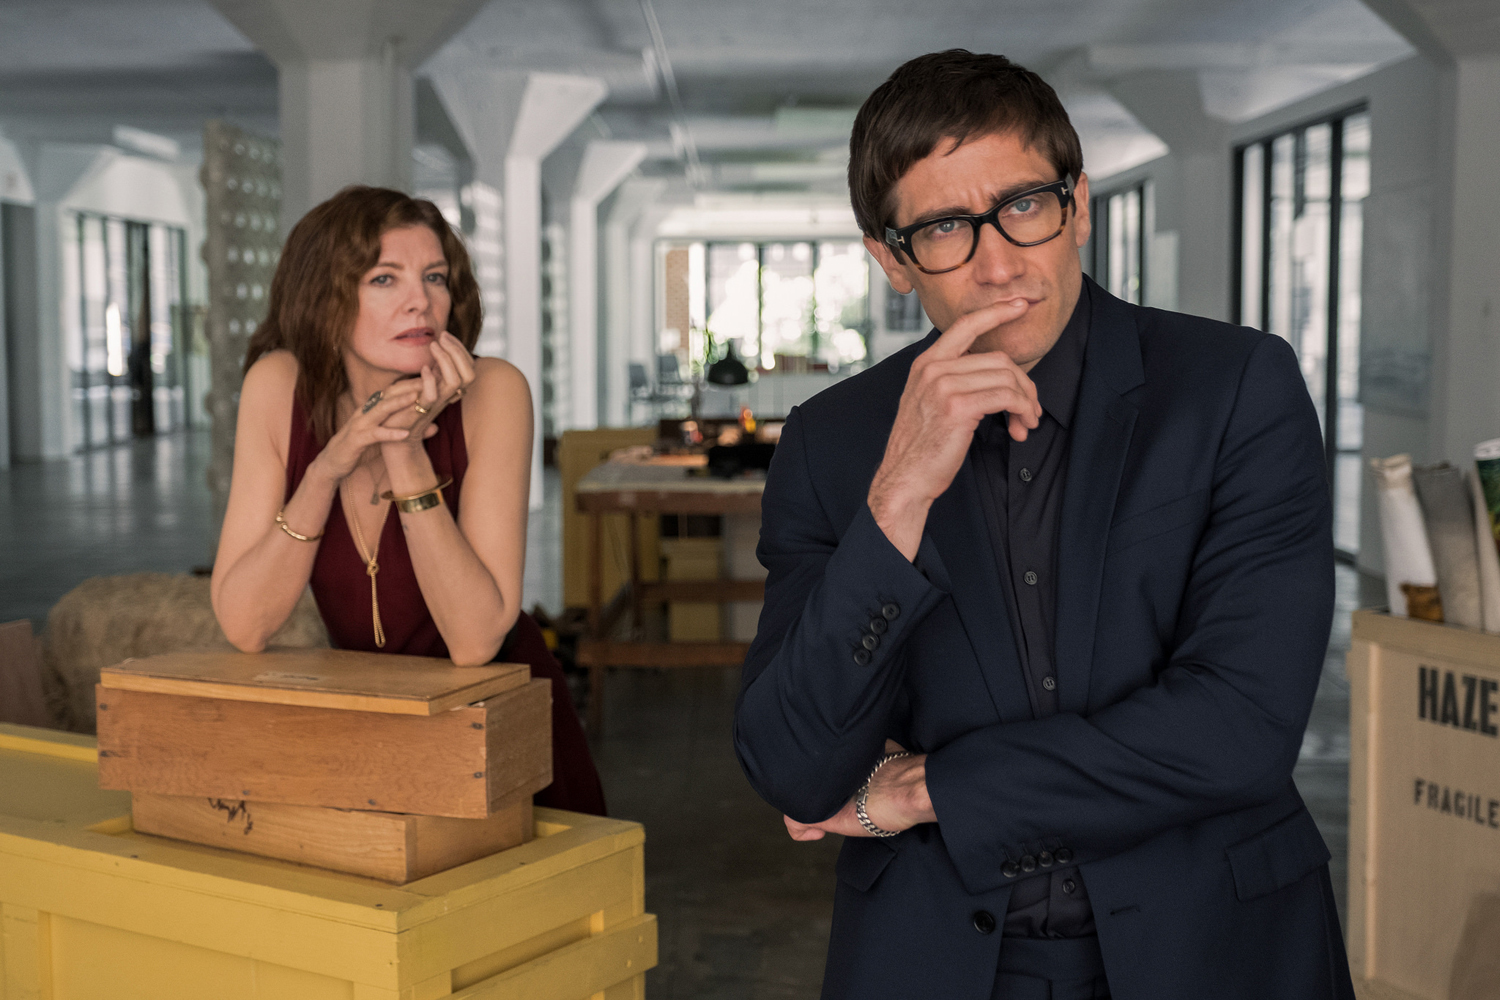 Art is unsafe in the Velvet Buzzsaw Trailer